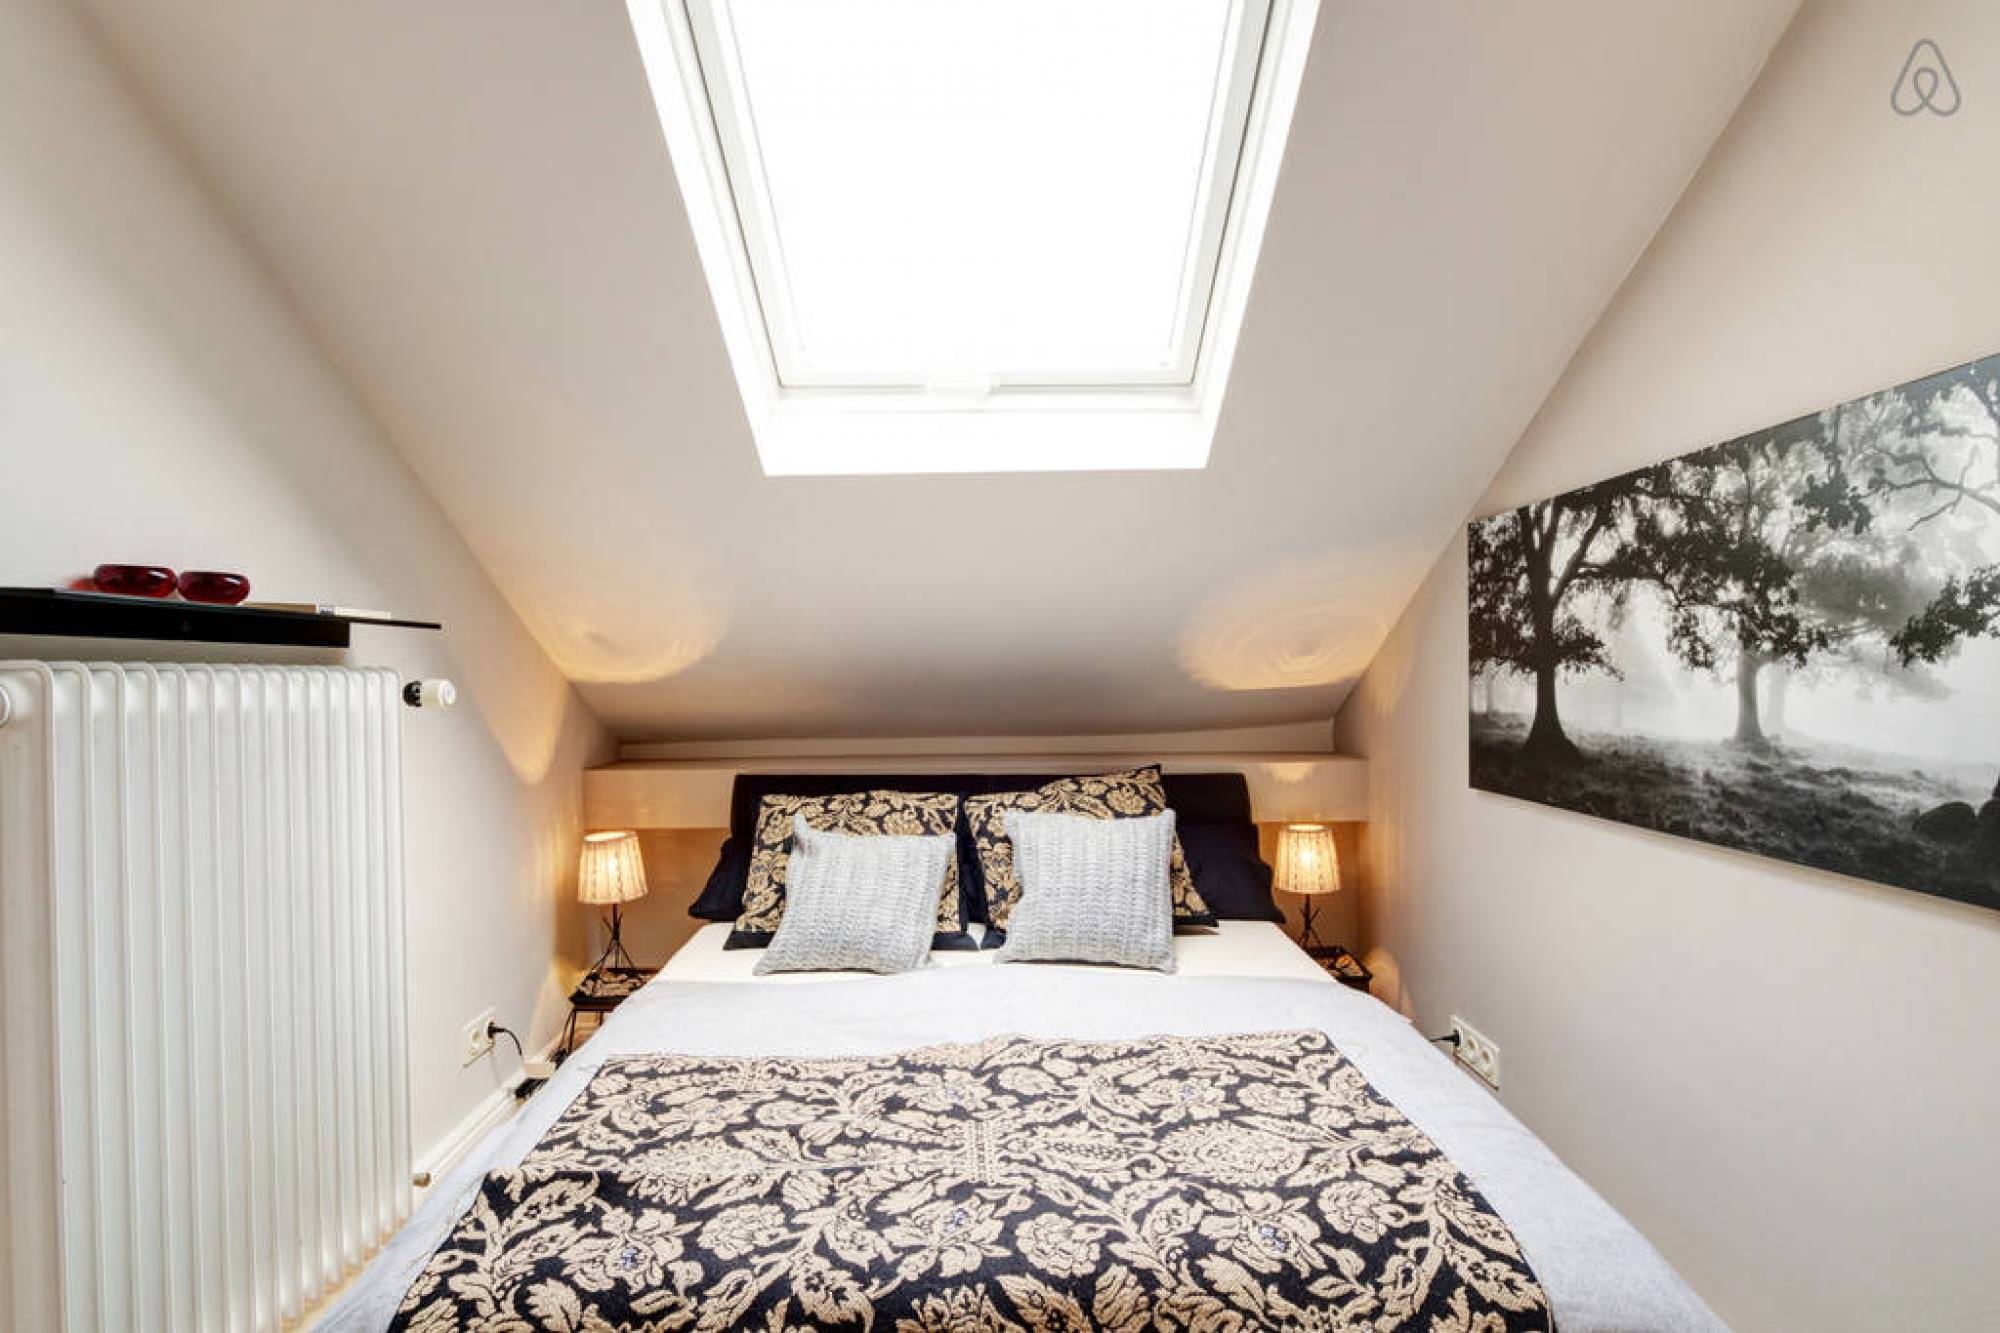 Bedroom Skylight 30 43 Skylight Bedroom Designs Bedroom Designs Designtrends